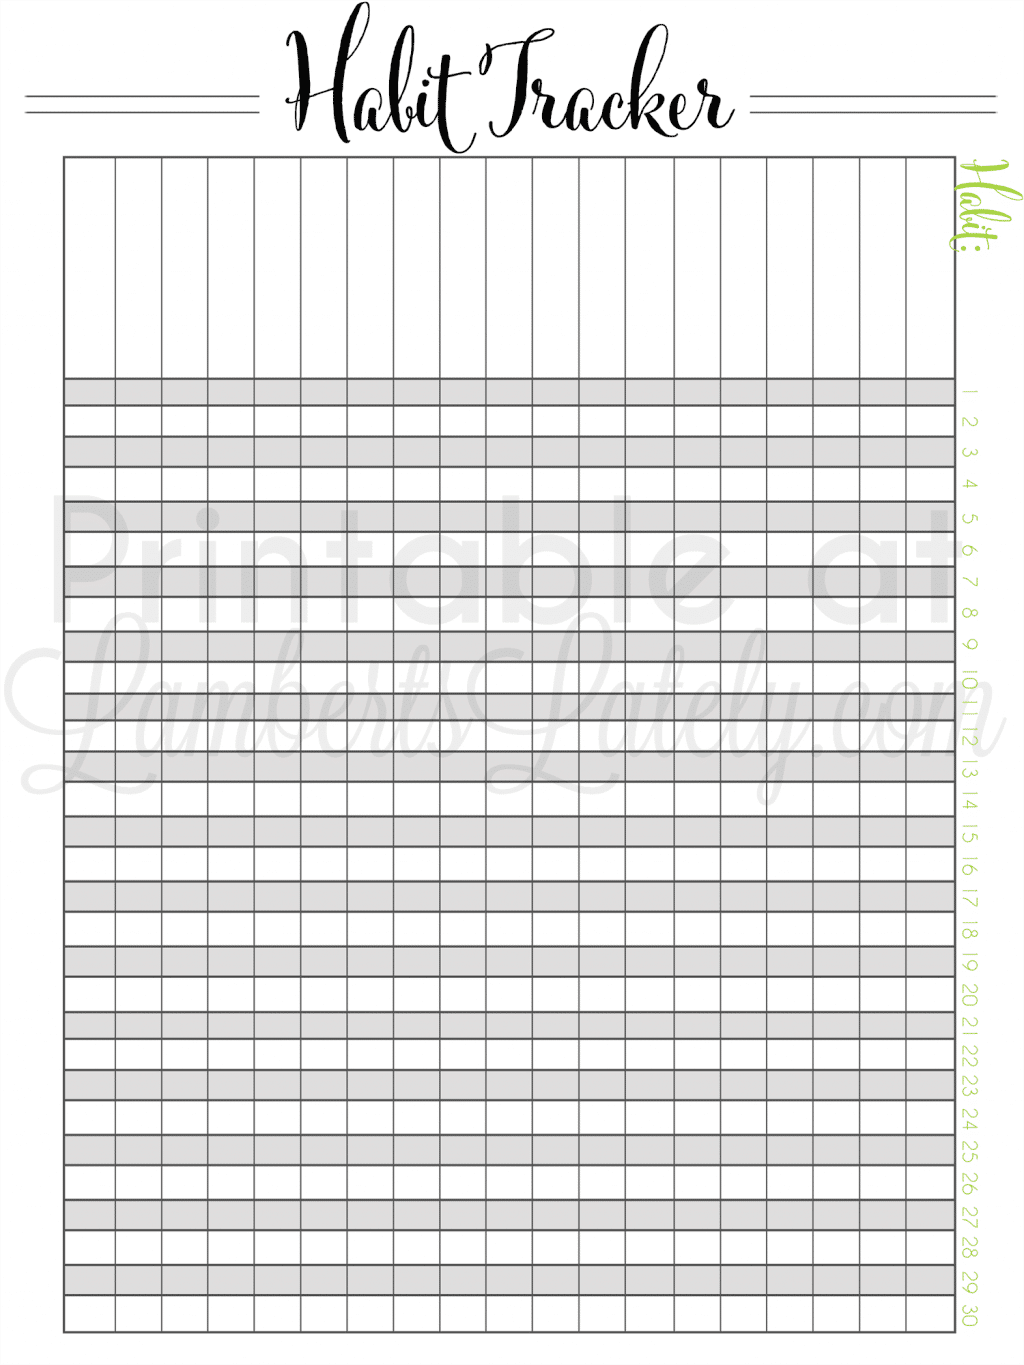 graphic relating to Habit Tracker Free Printable named Saying the Calendar year of Reason - On a yearly basis Month to month Practice